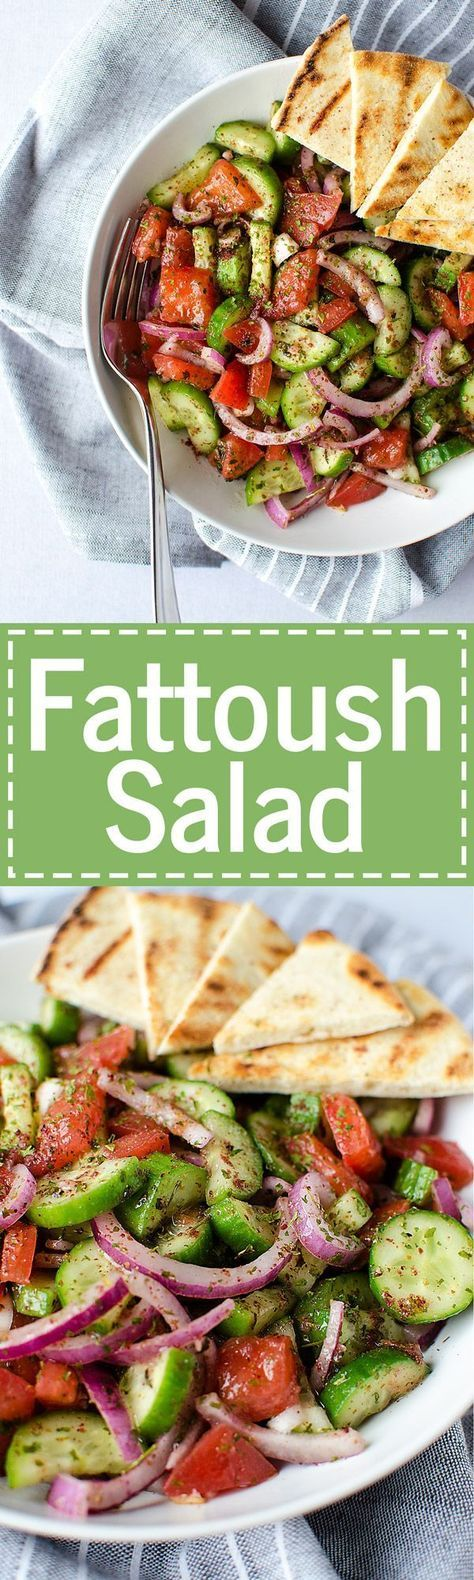 Fattoush Salad - A simple and easy Middle Eastern salad that comes together in just minutes. It's piled high with fresh veggies and leaves you feeling healthy and satisfied. (Vegan & GF)   RECIPE at http://NomingthruLife.com